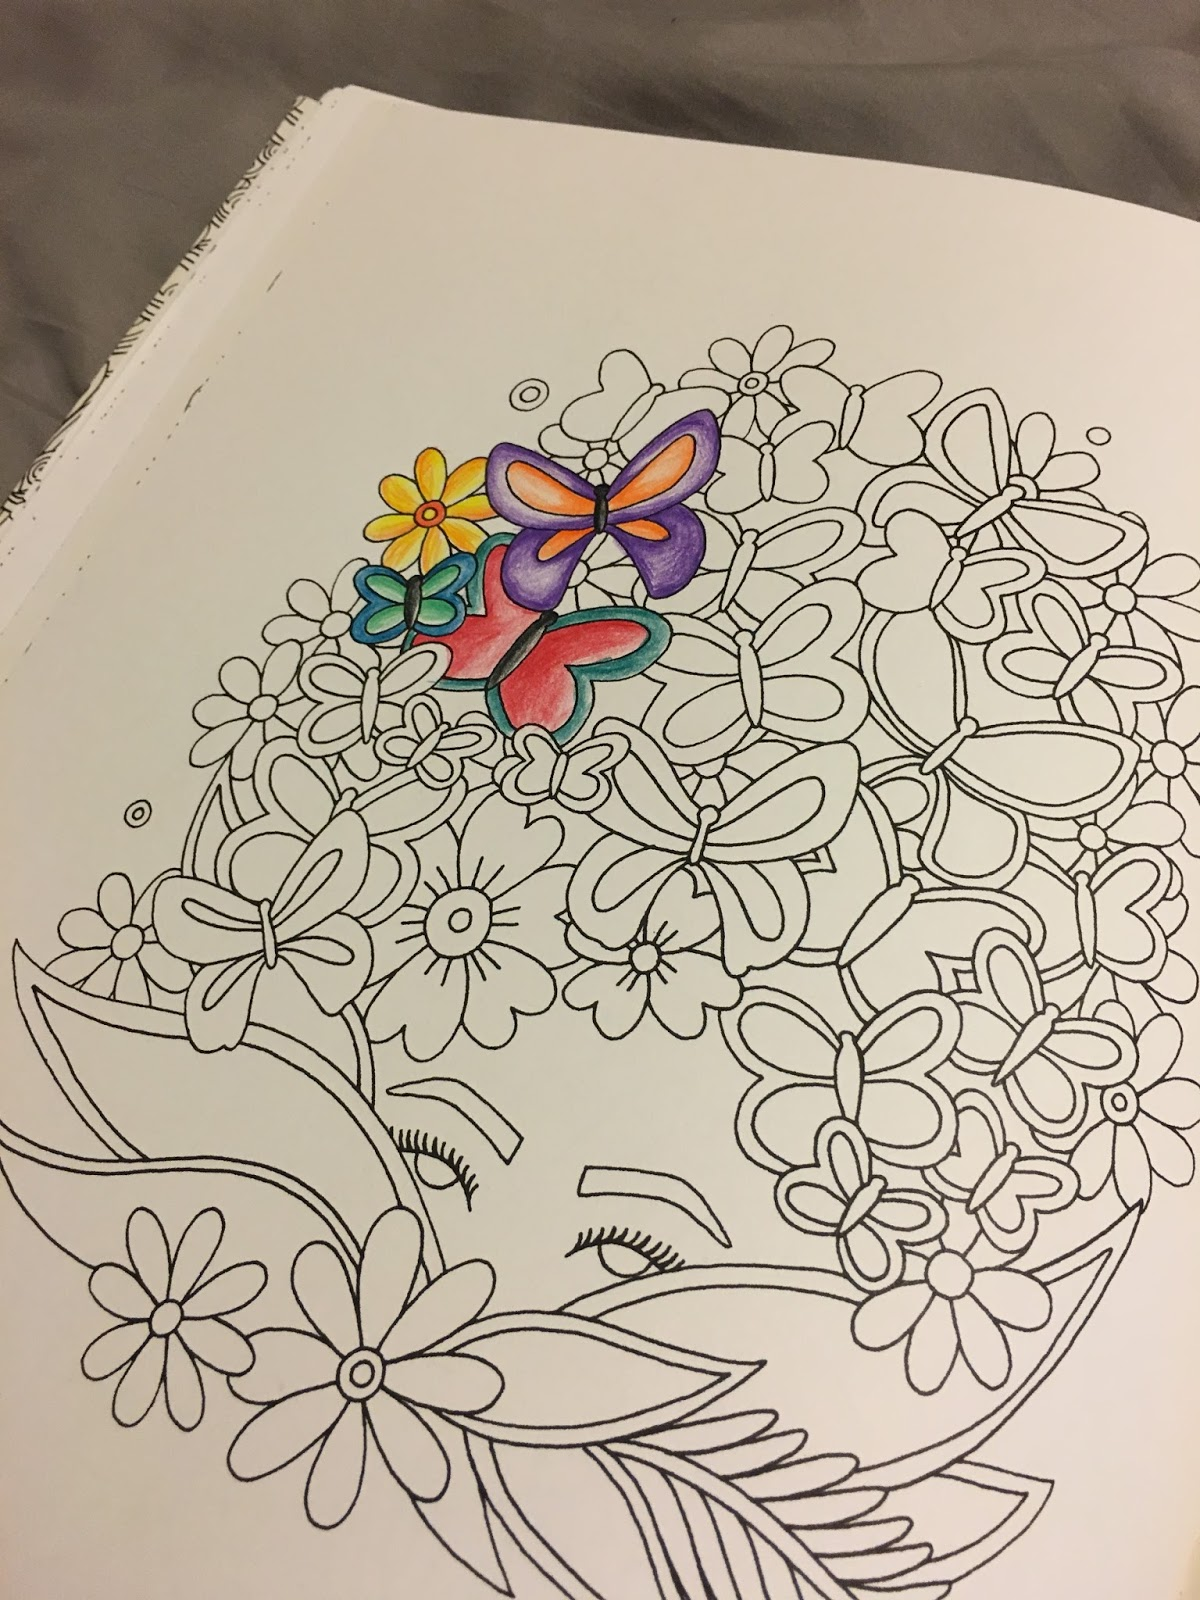 Take A Look At This Page With Butterflies And Flowers As Hair I Used Prismacolor Colored Pencils To Make Use Of Shading Add Some Contrast It